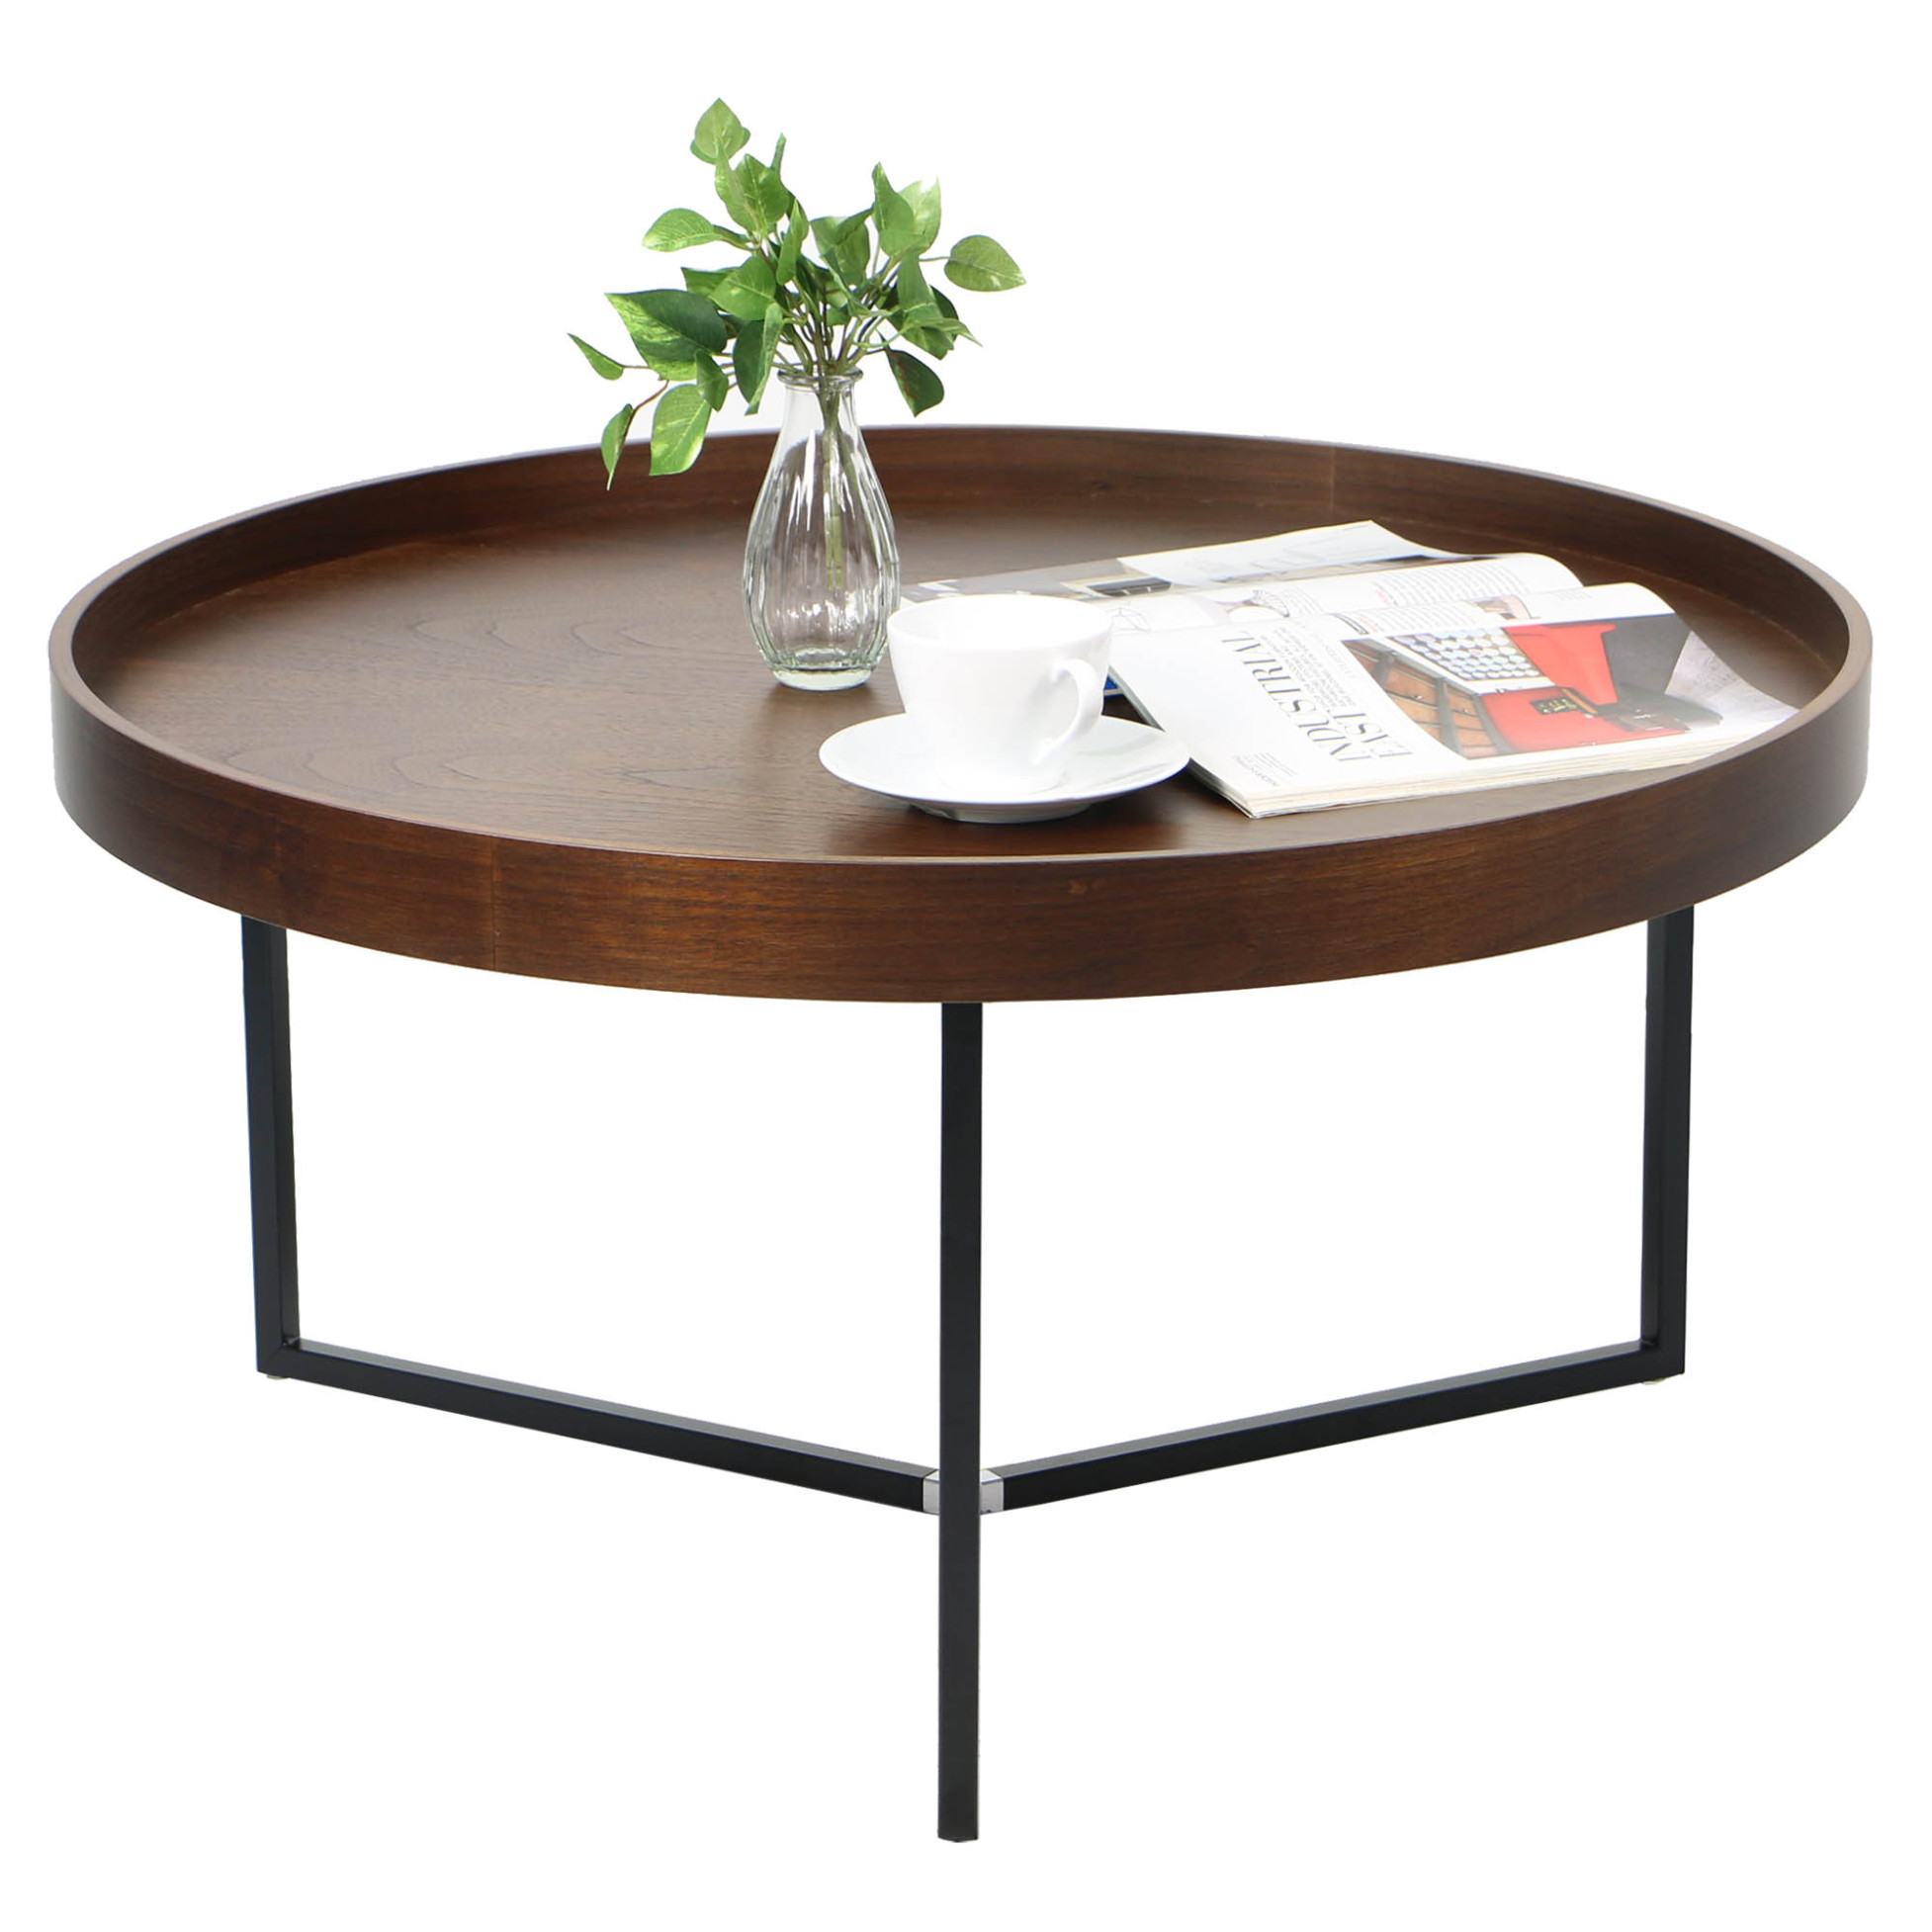 Barrie walnut round tray table regular price s269 00